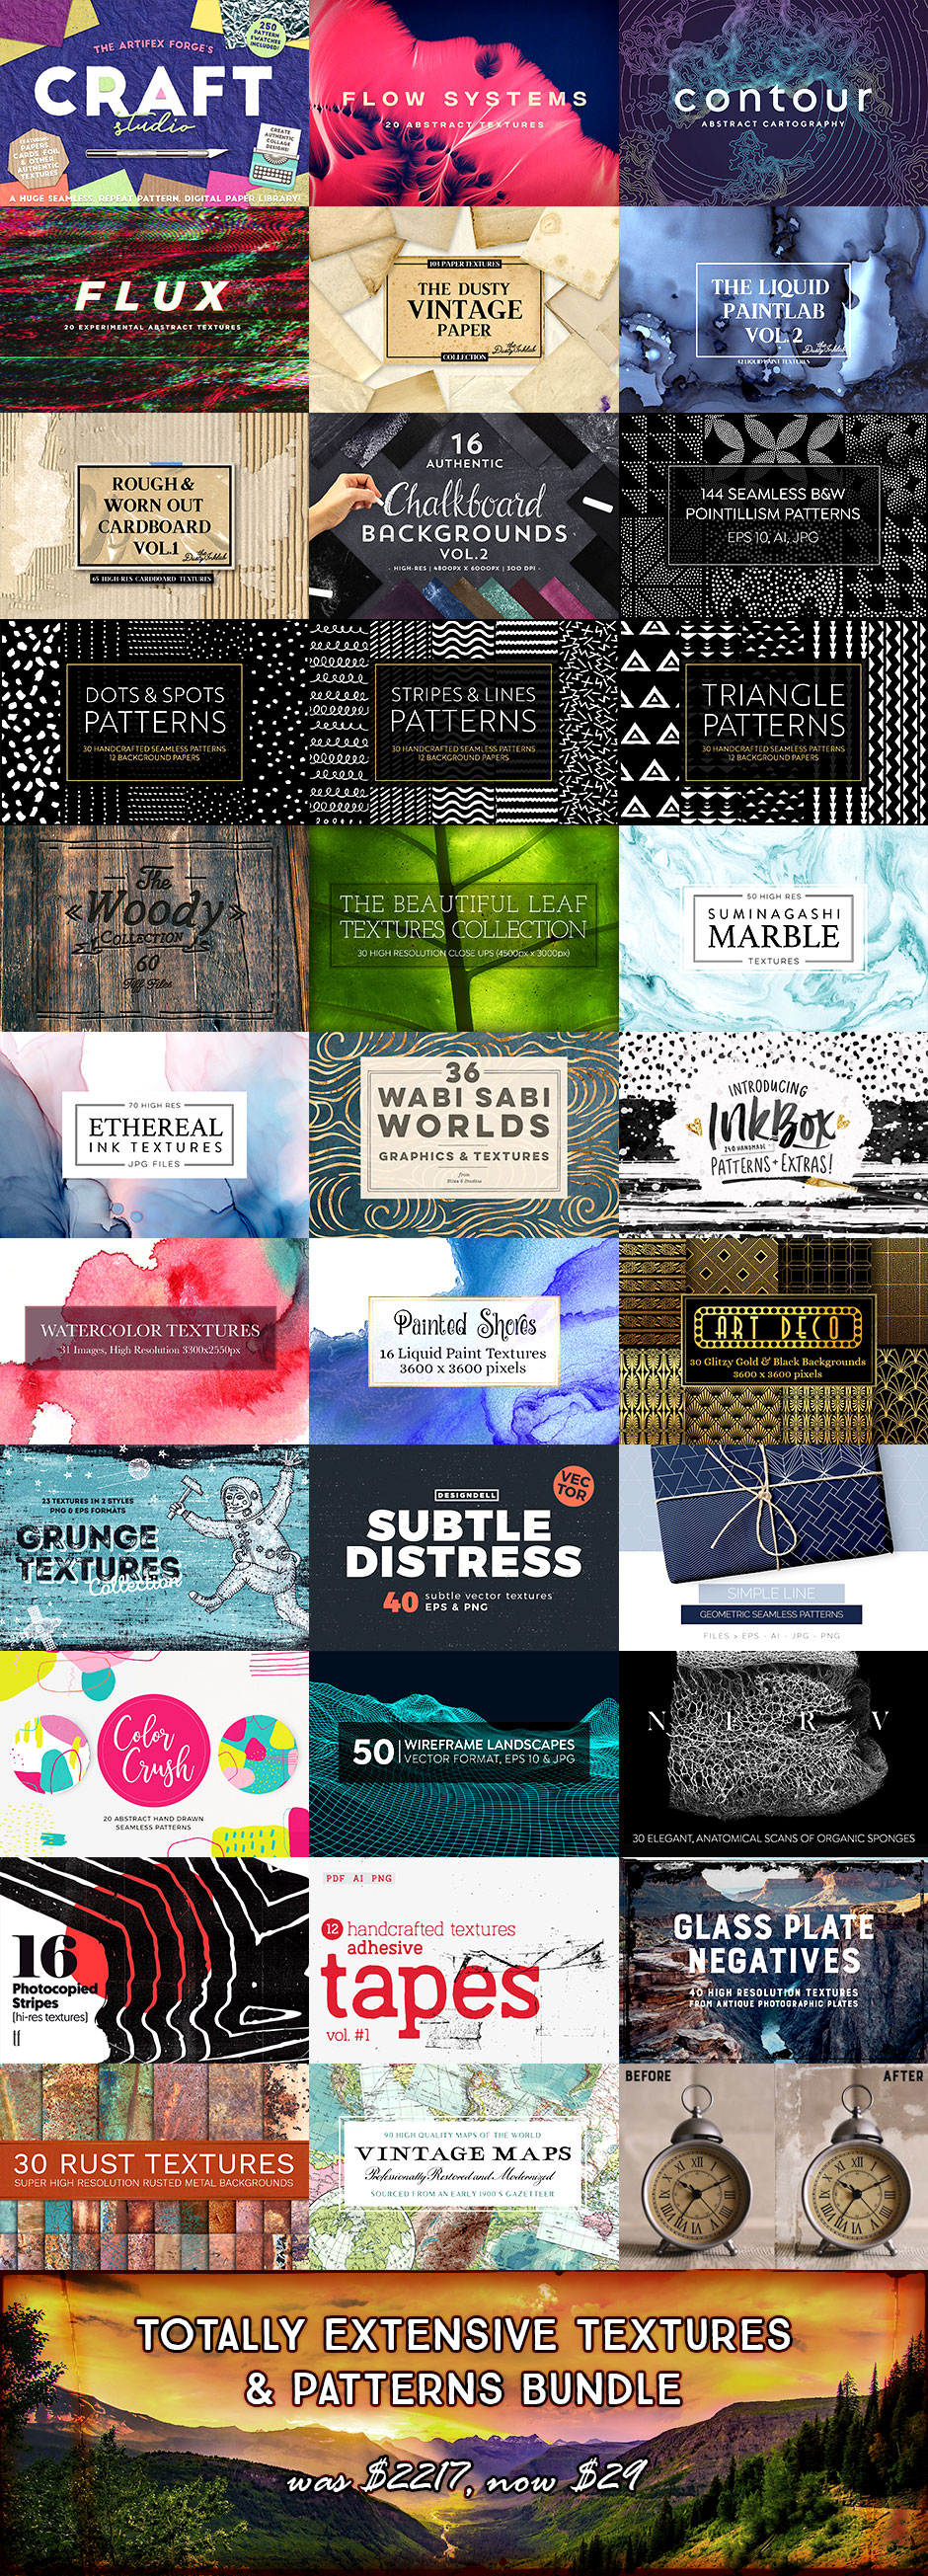 These Texture & Pattern Resources